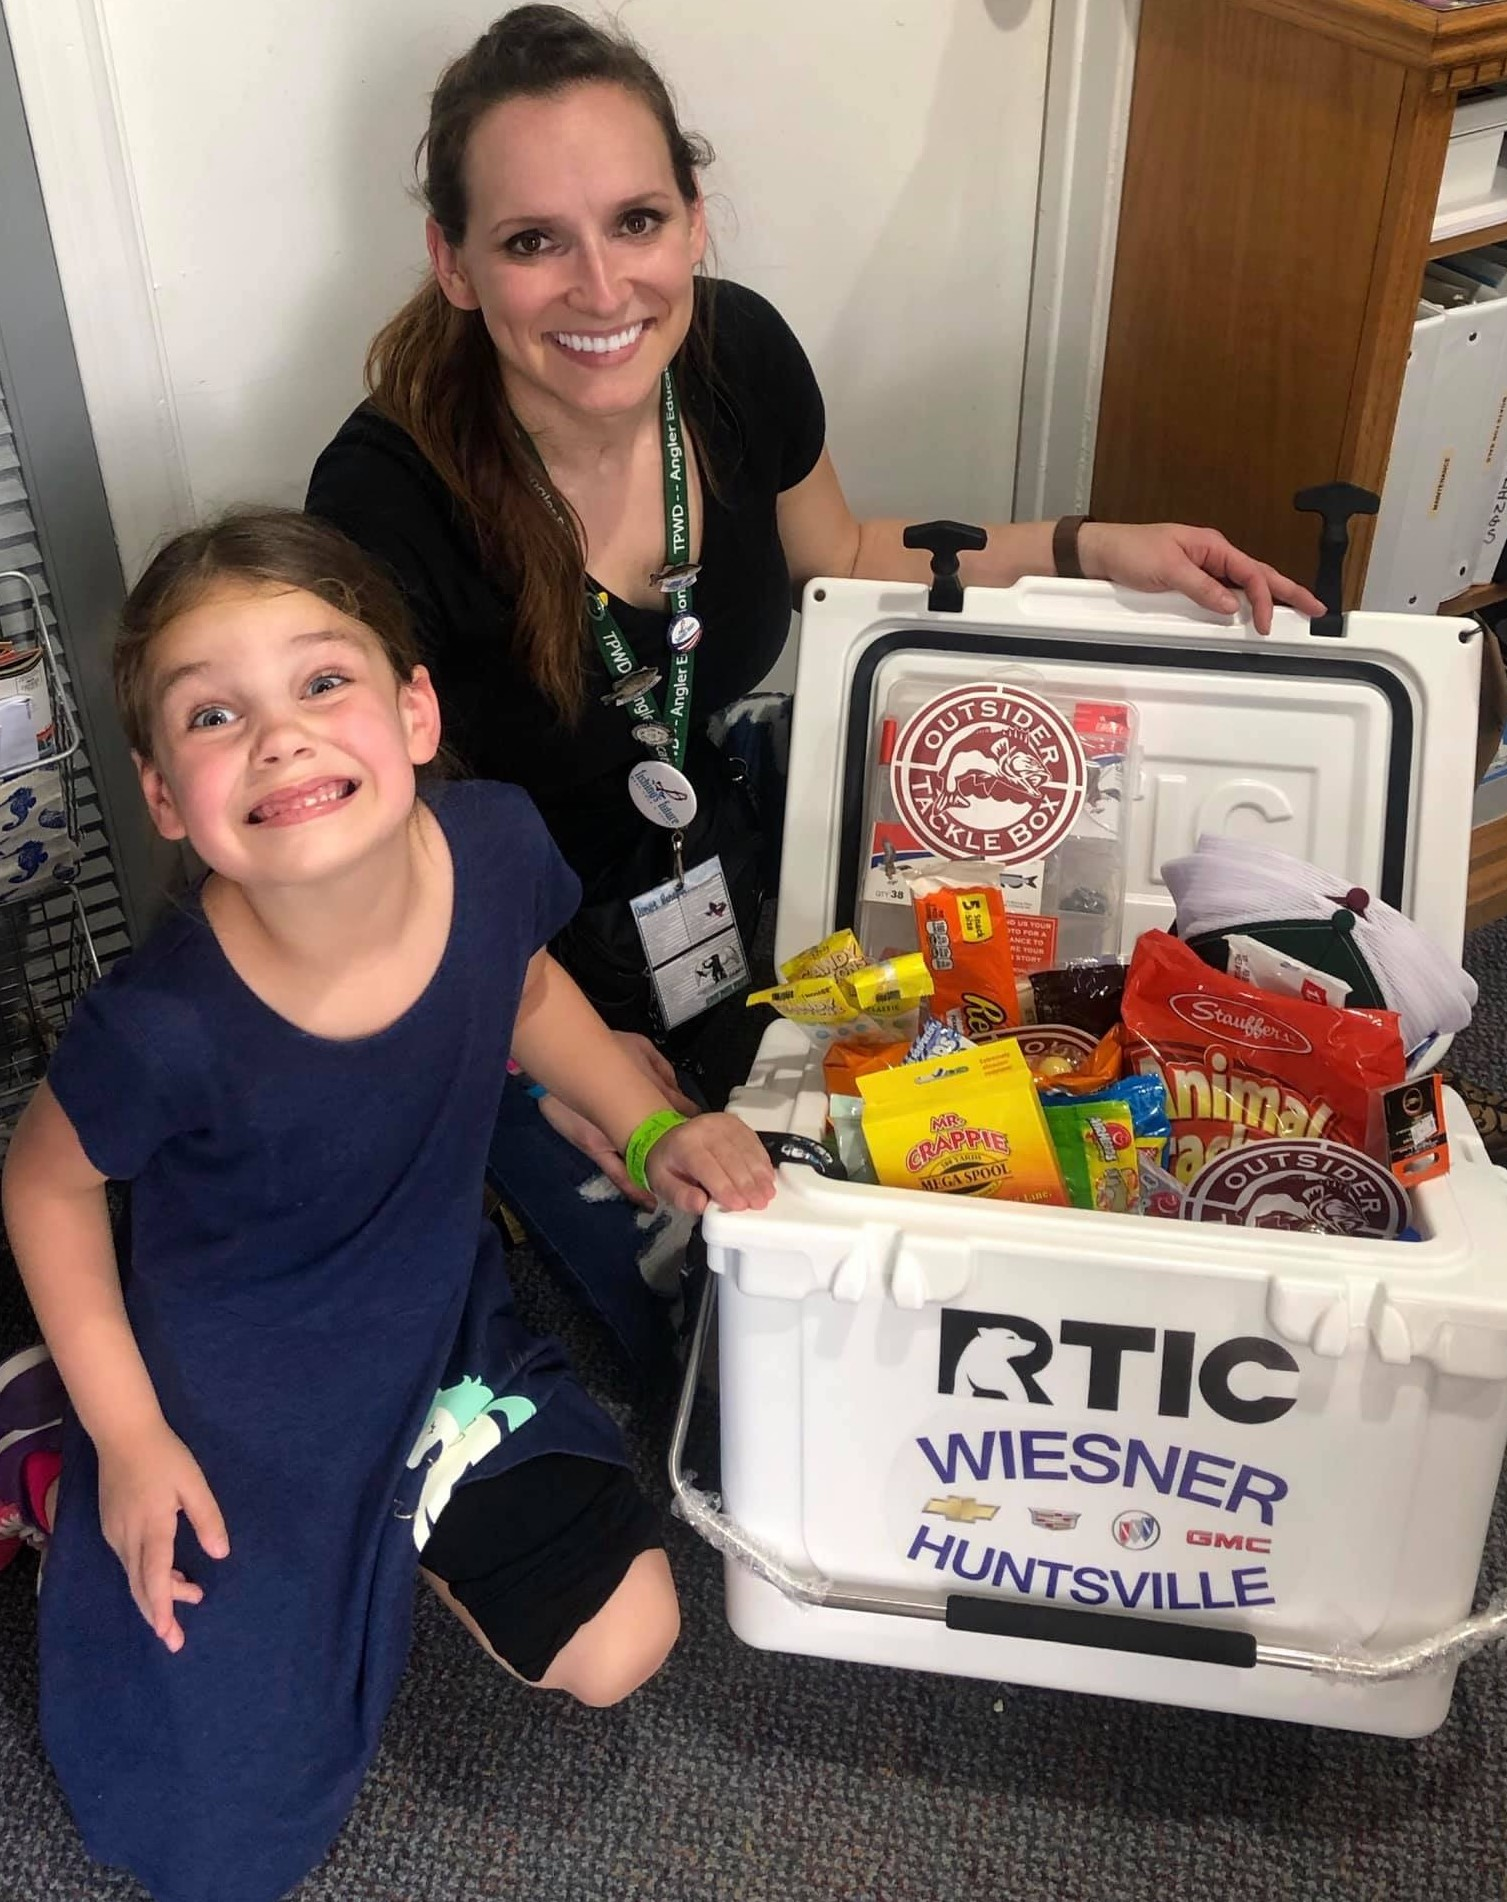 Evelyn Yingling with Winning Cooler